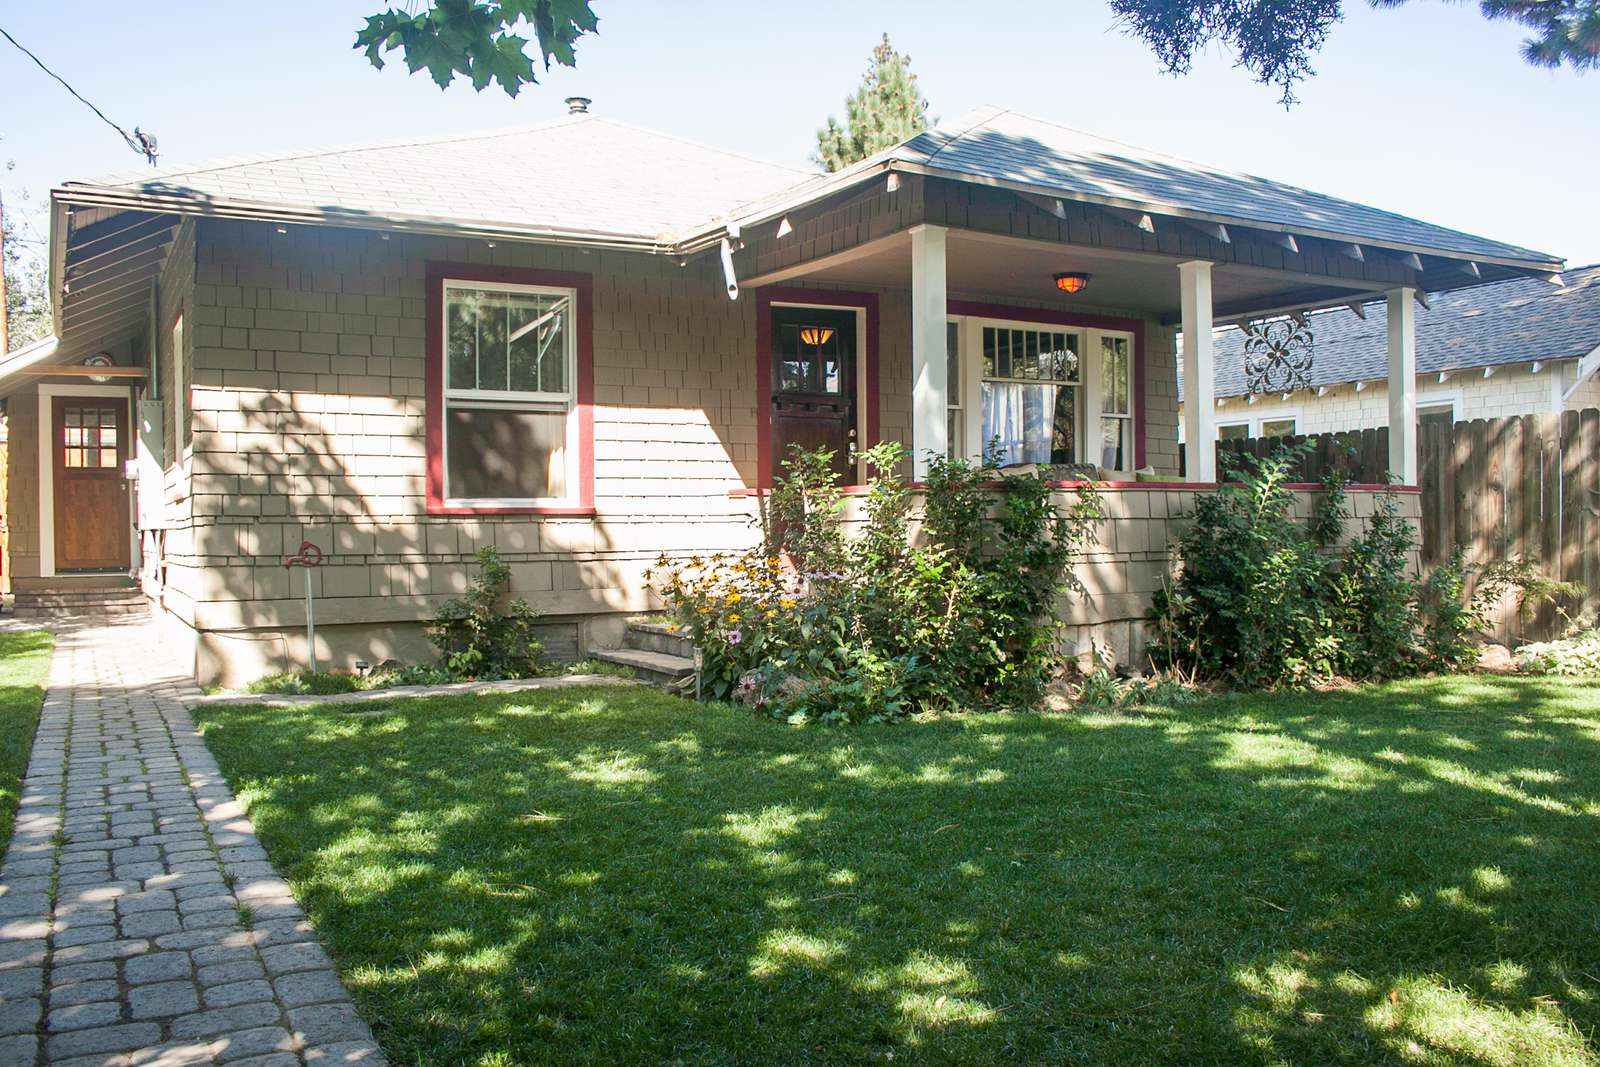 The Basalt Bungalow just steps to downtown Bend and many shops - property